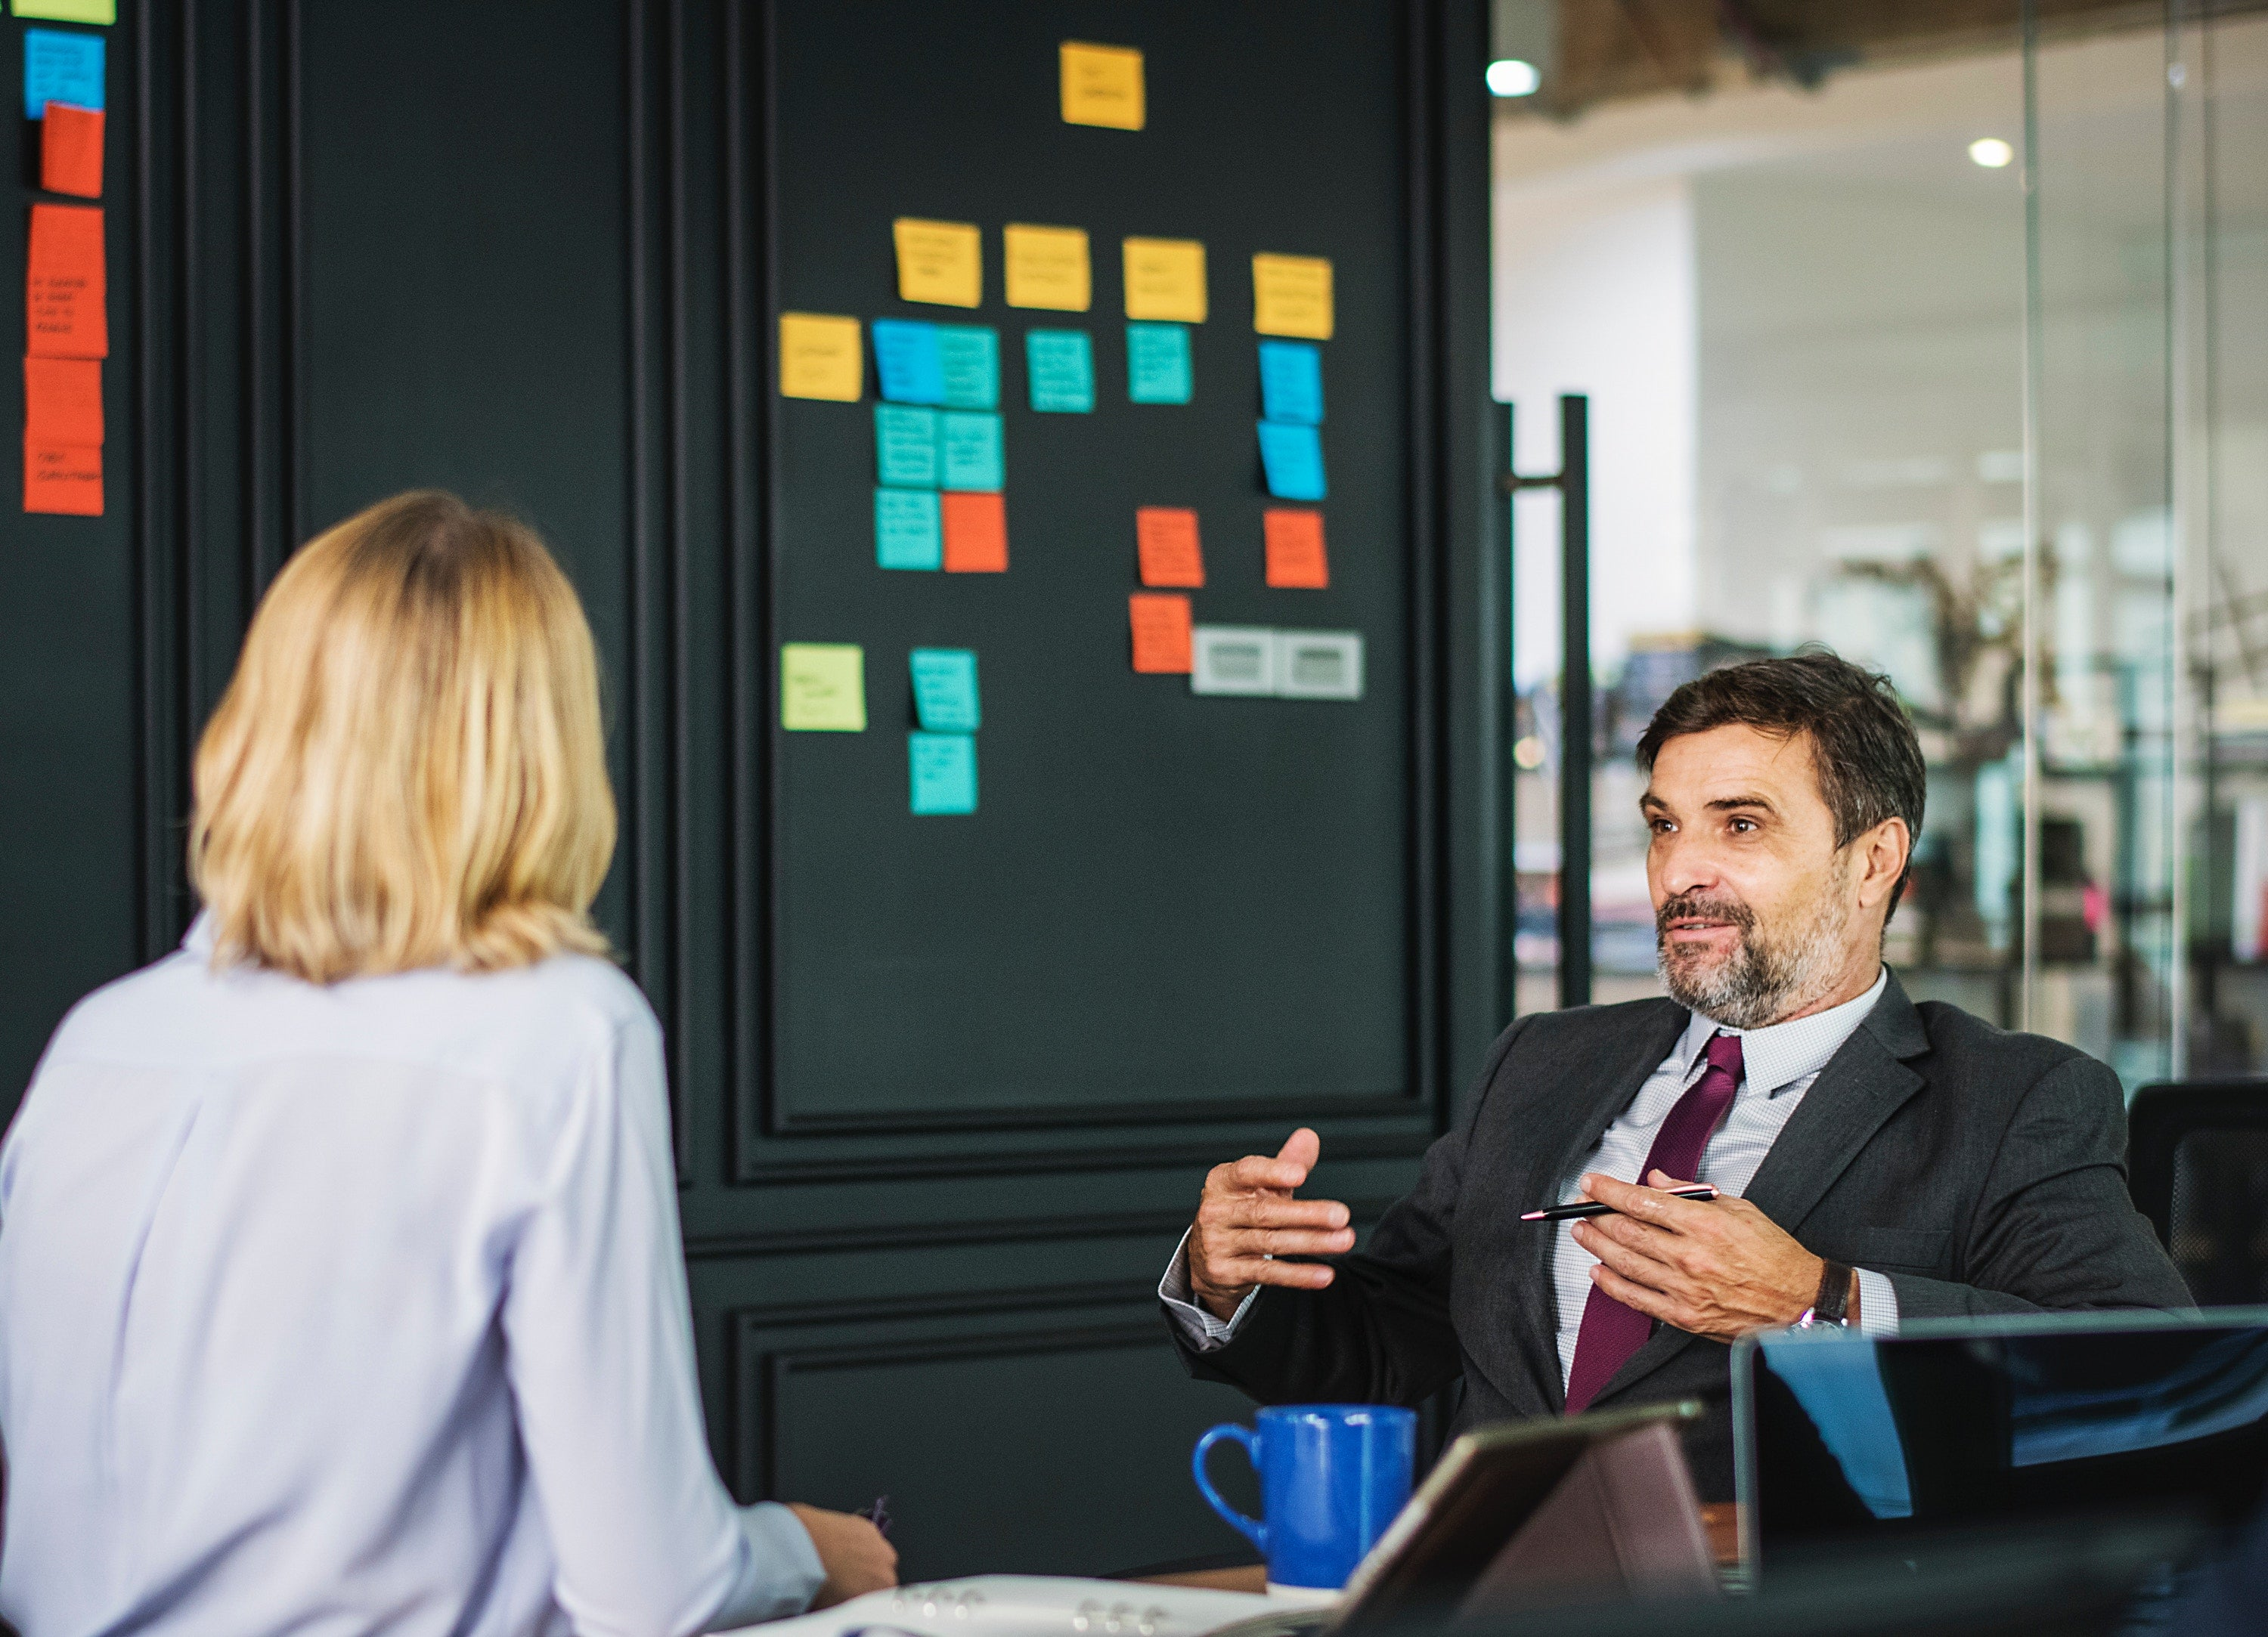 A man talks to a woman in front of drawing board with multicolored sticky notes on t.